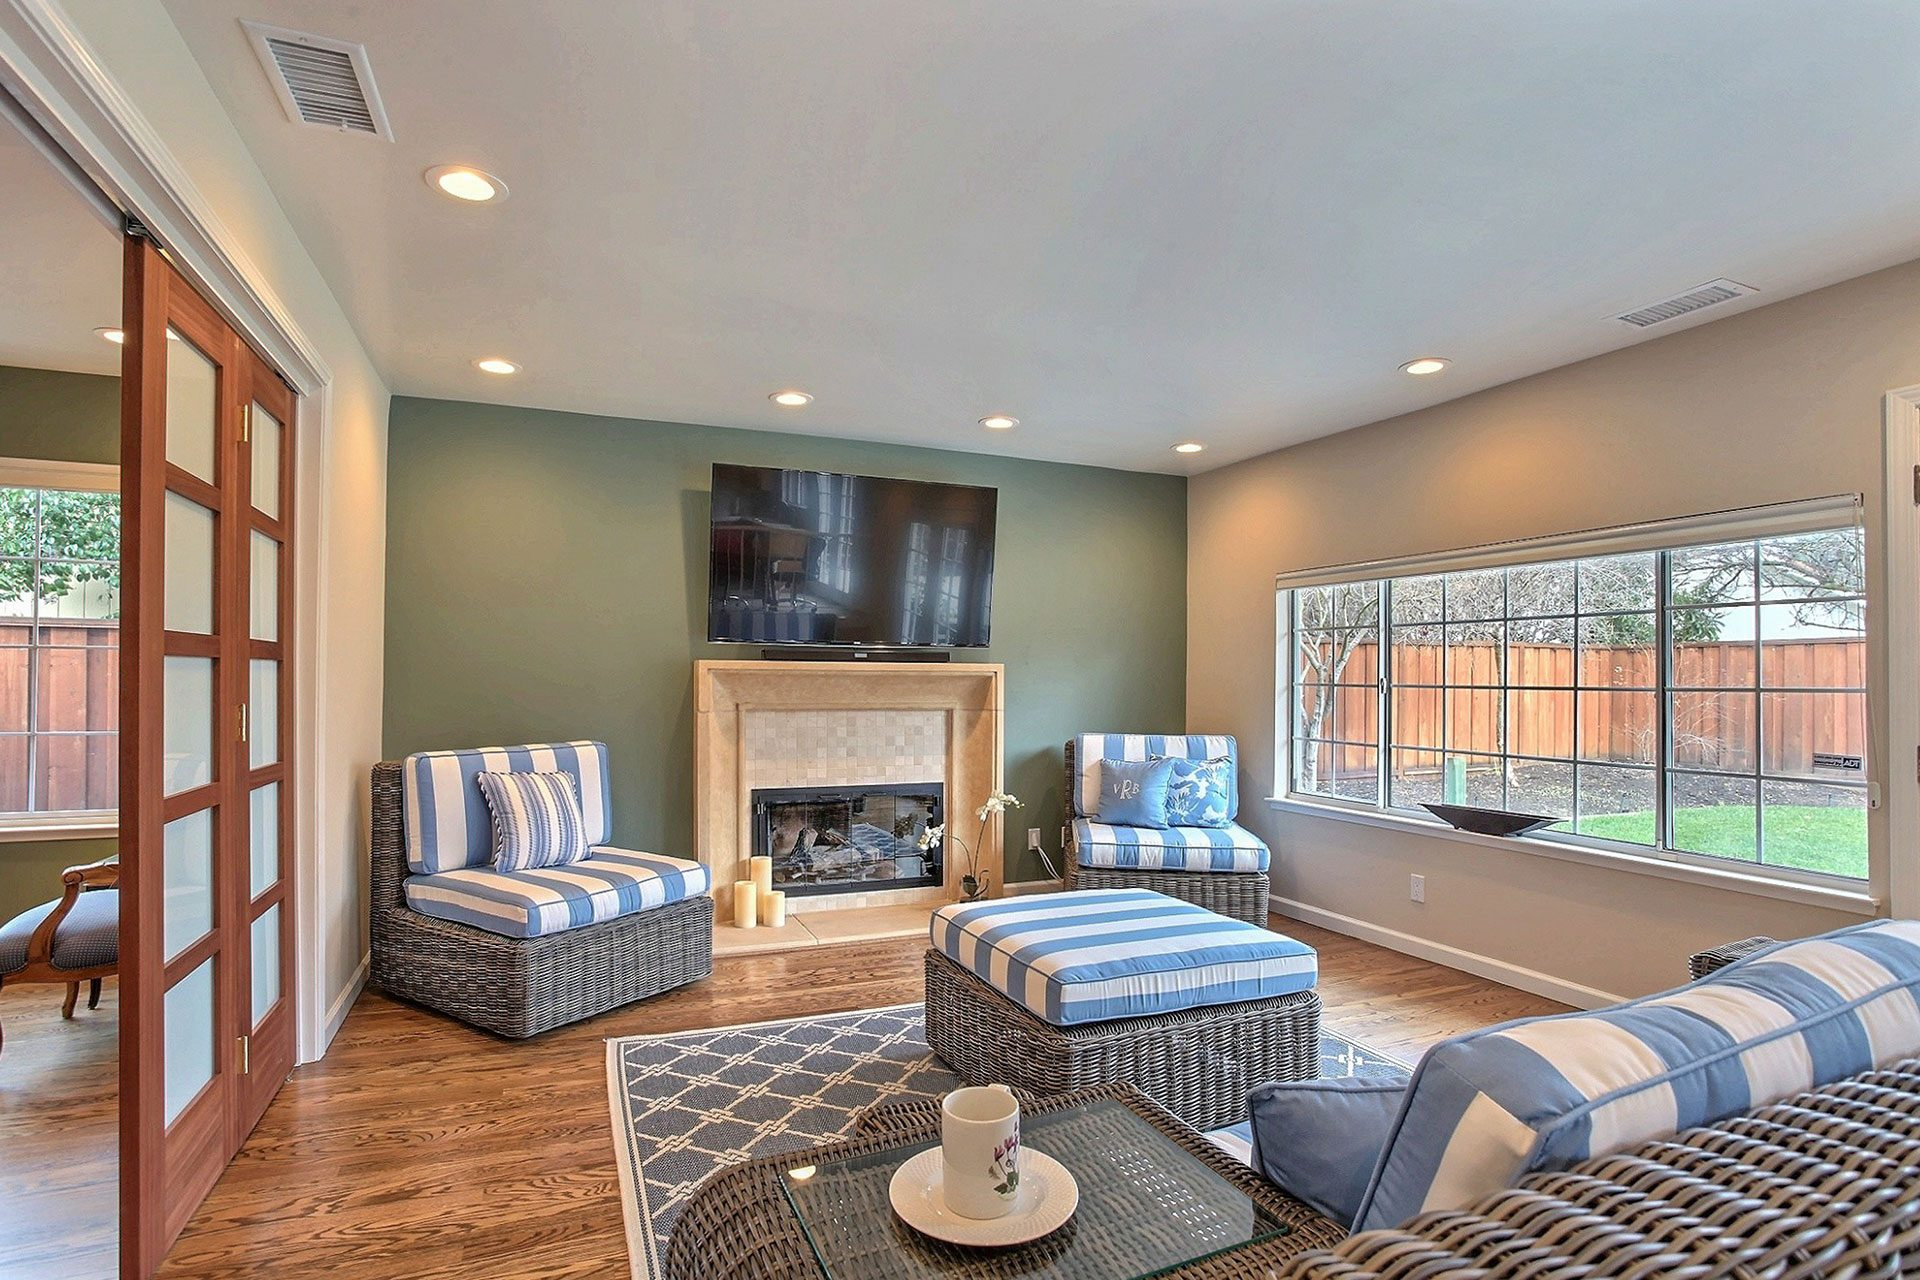 large picture window in living room